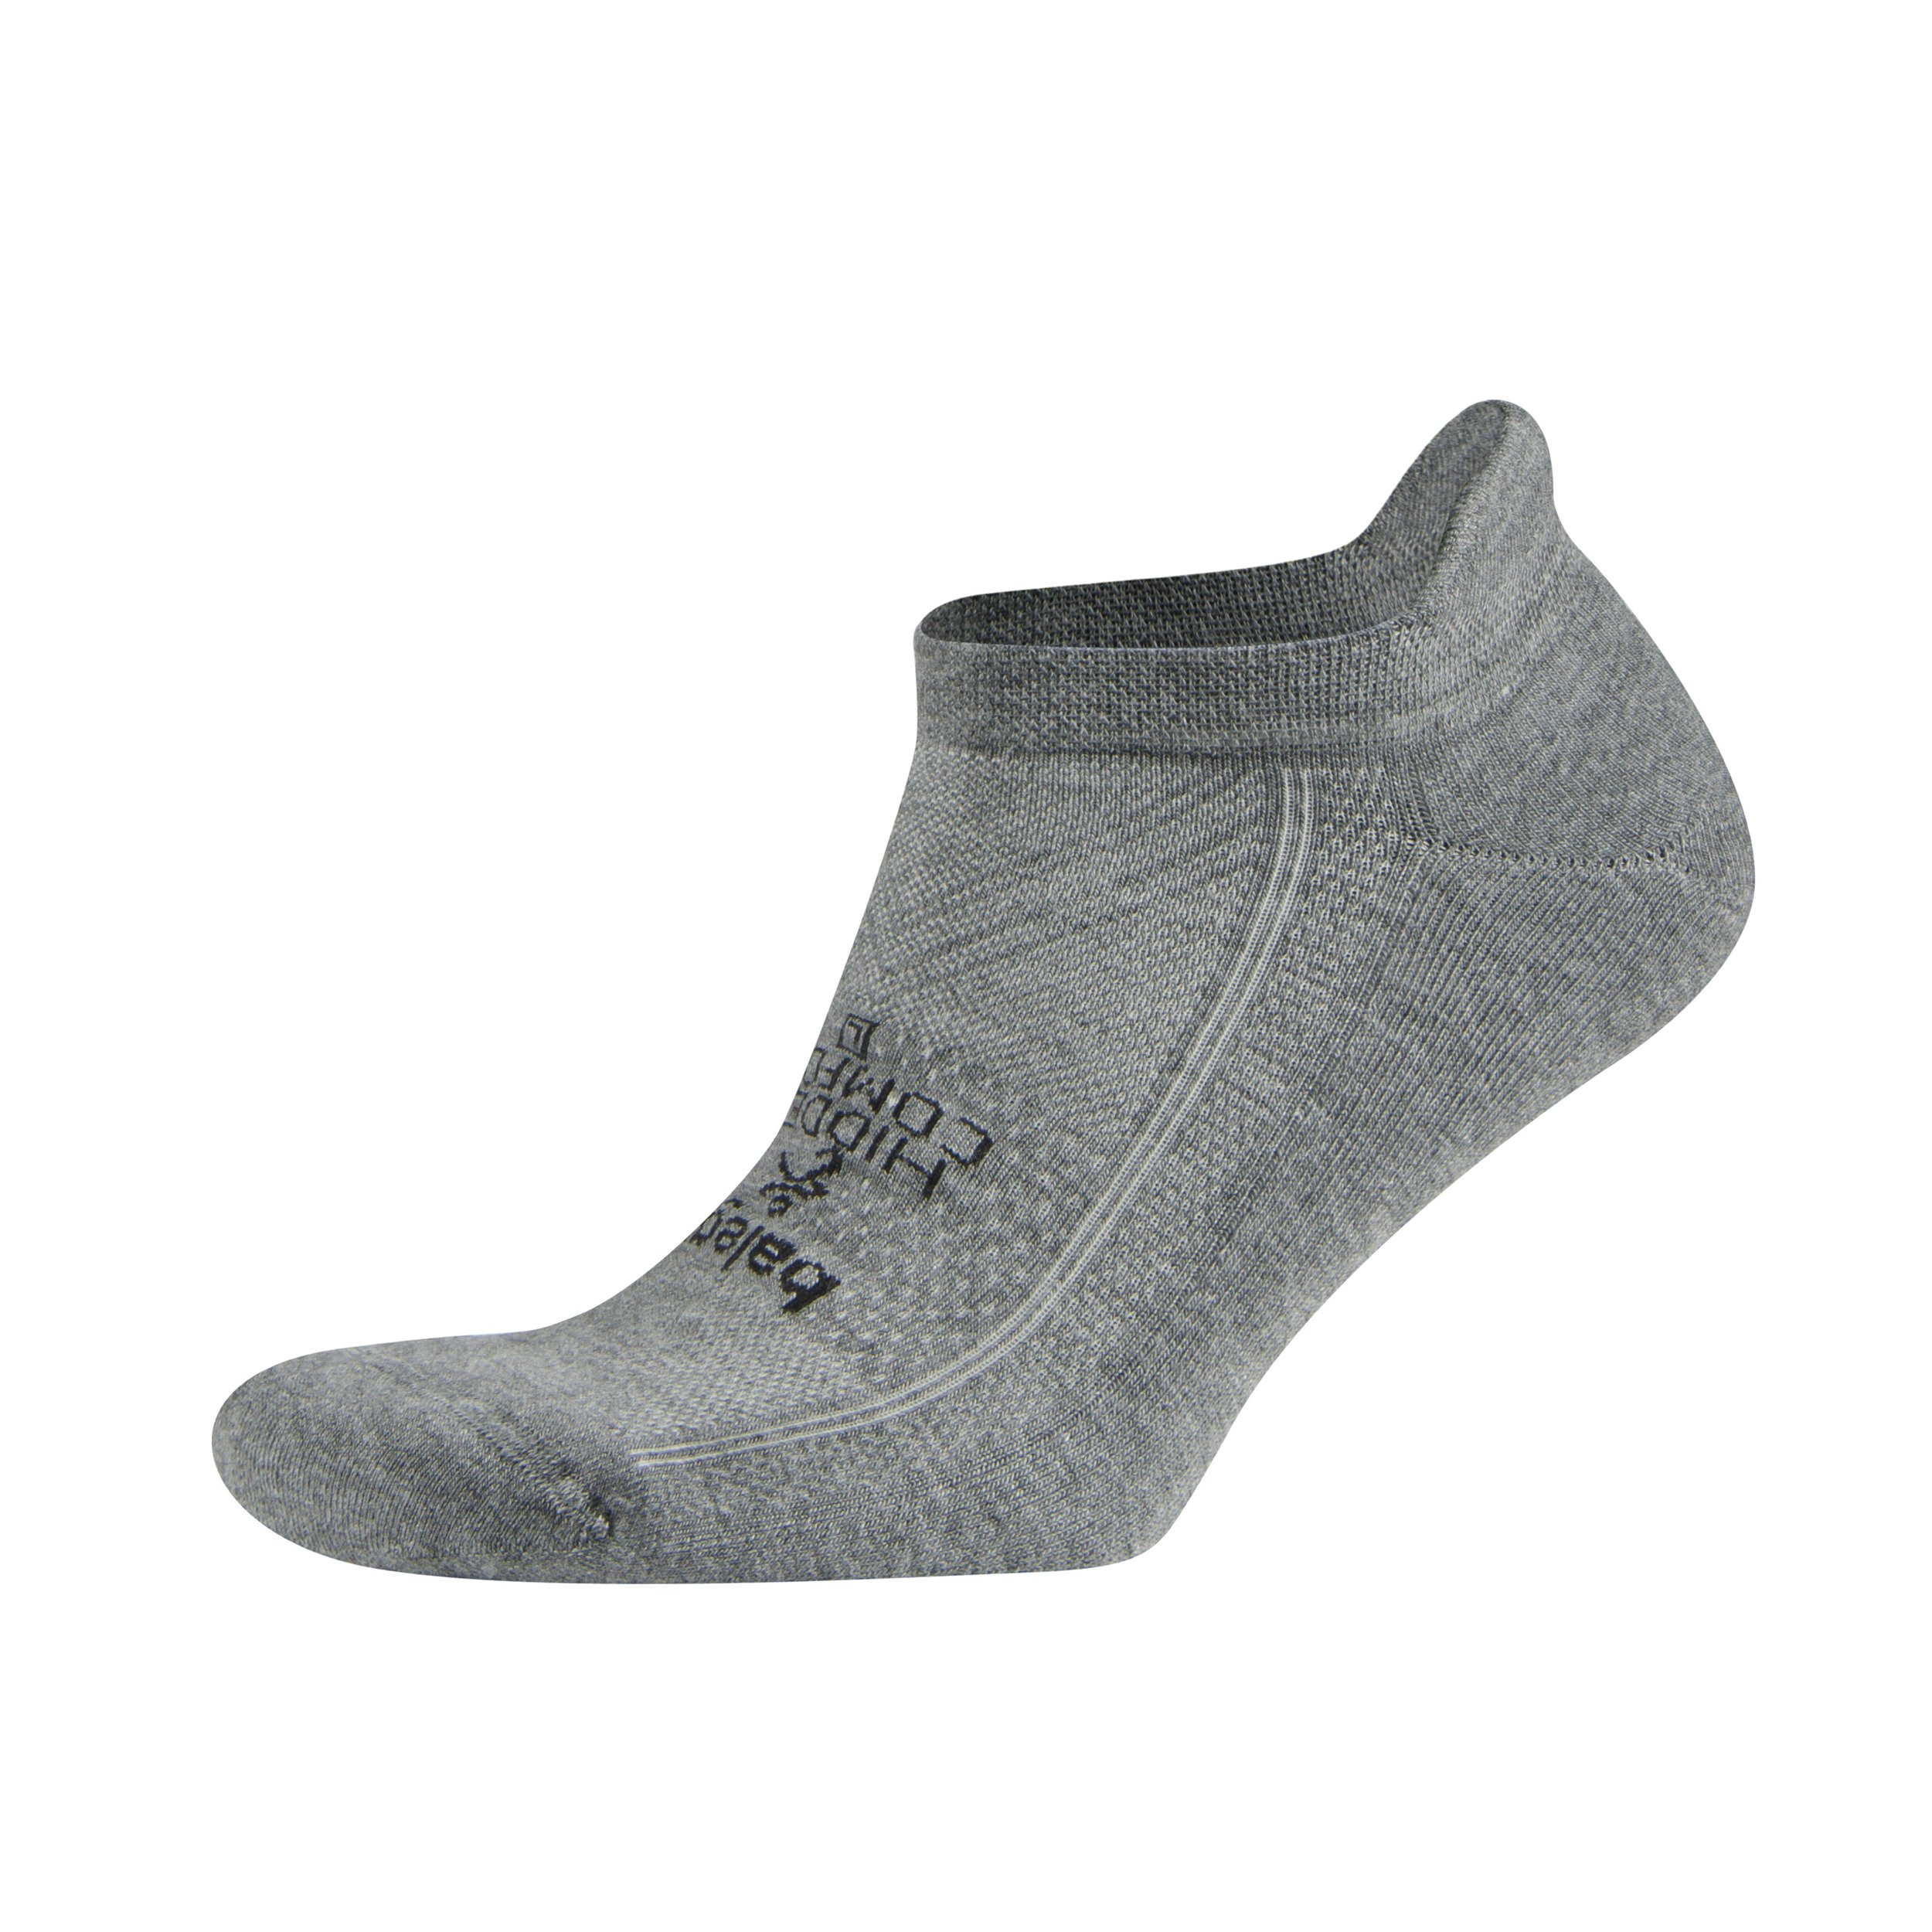 Balega Hidden Comfort No-Show Running Socks for Men and Women (1 Pair), Charcoal, Medium